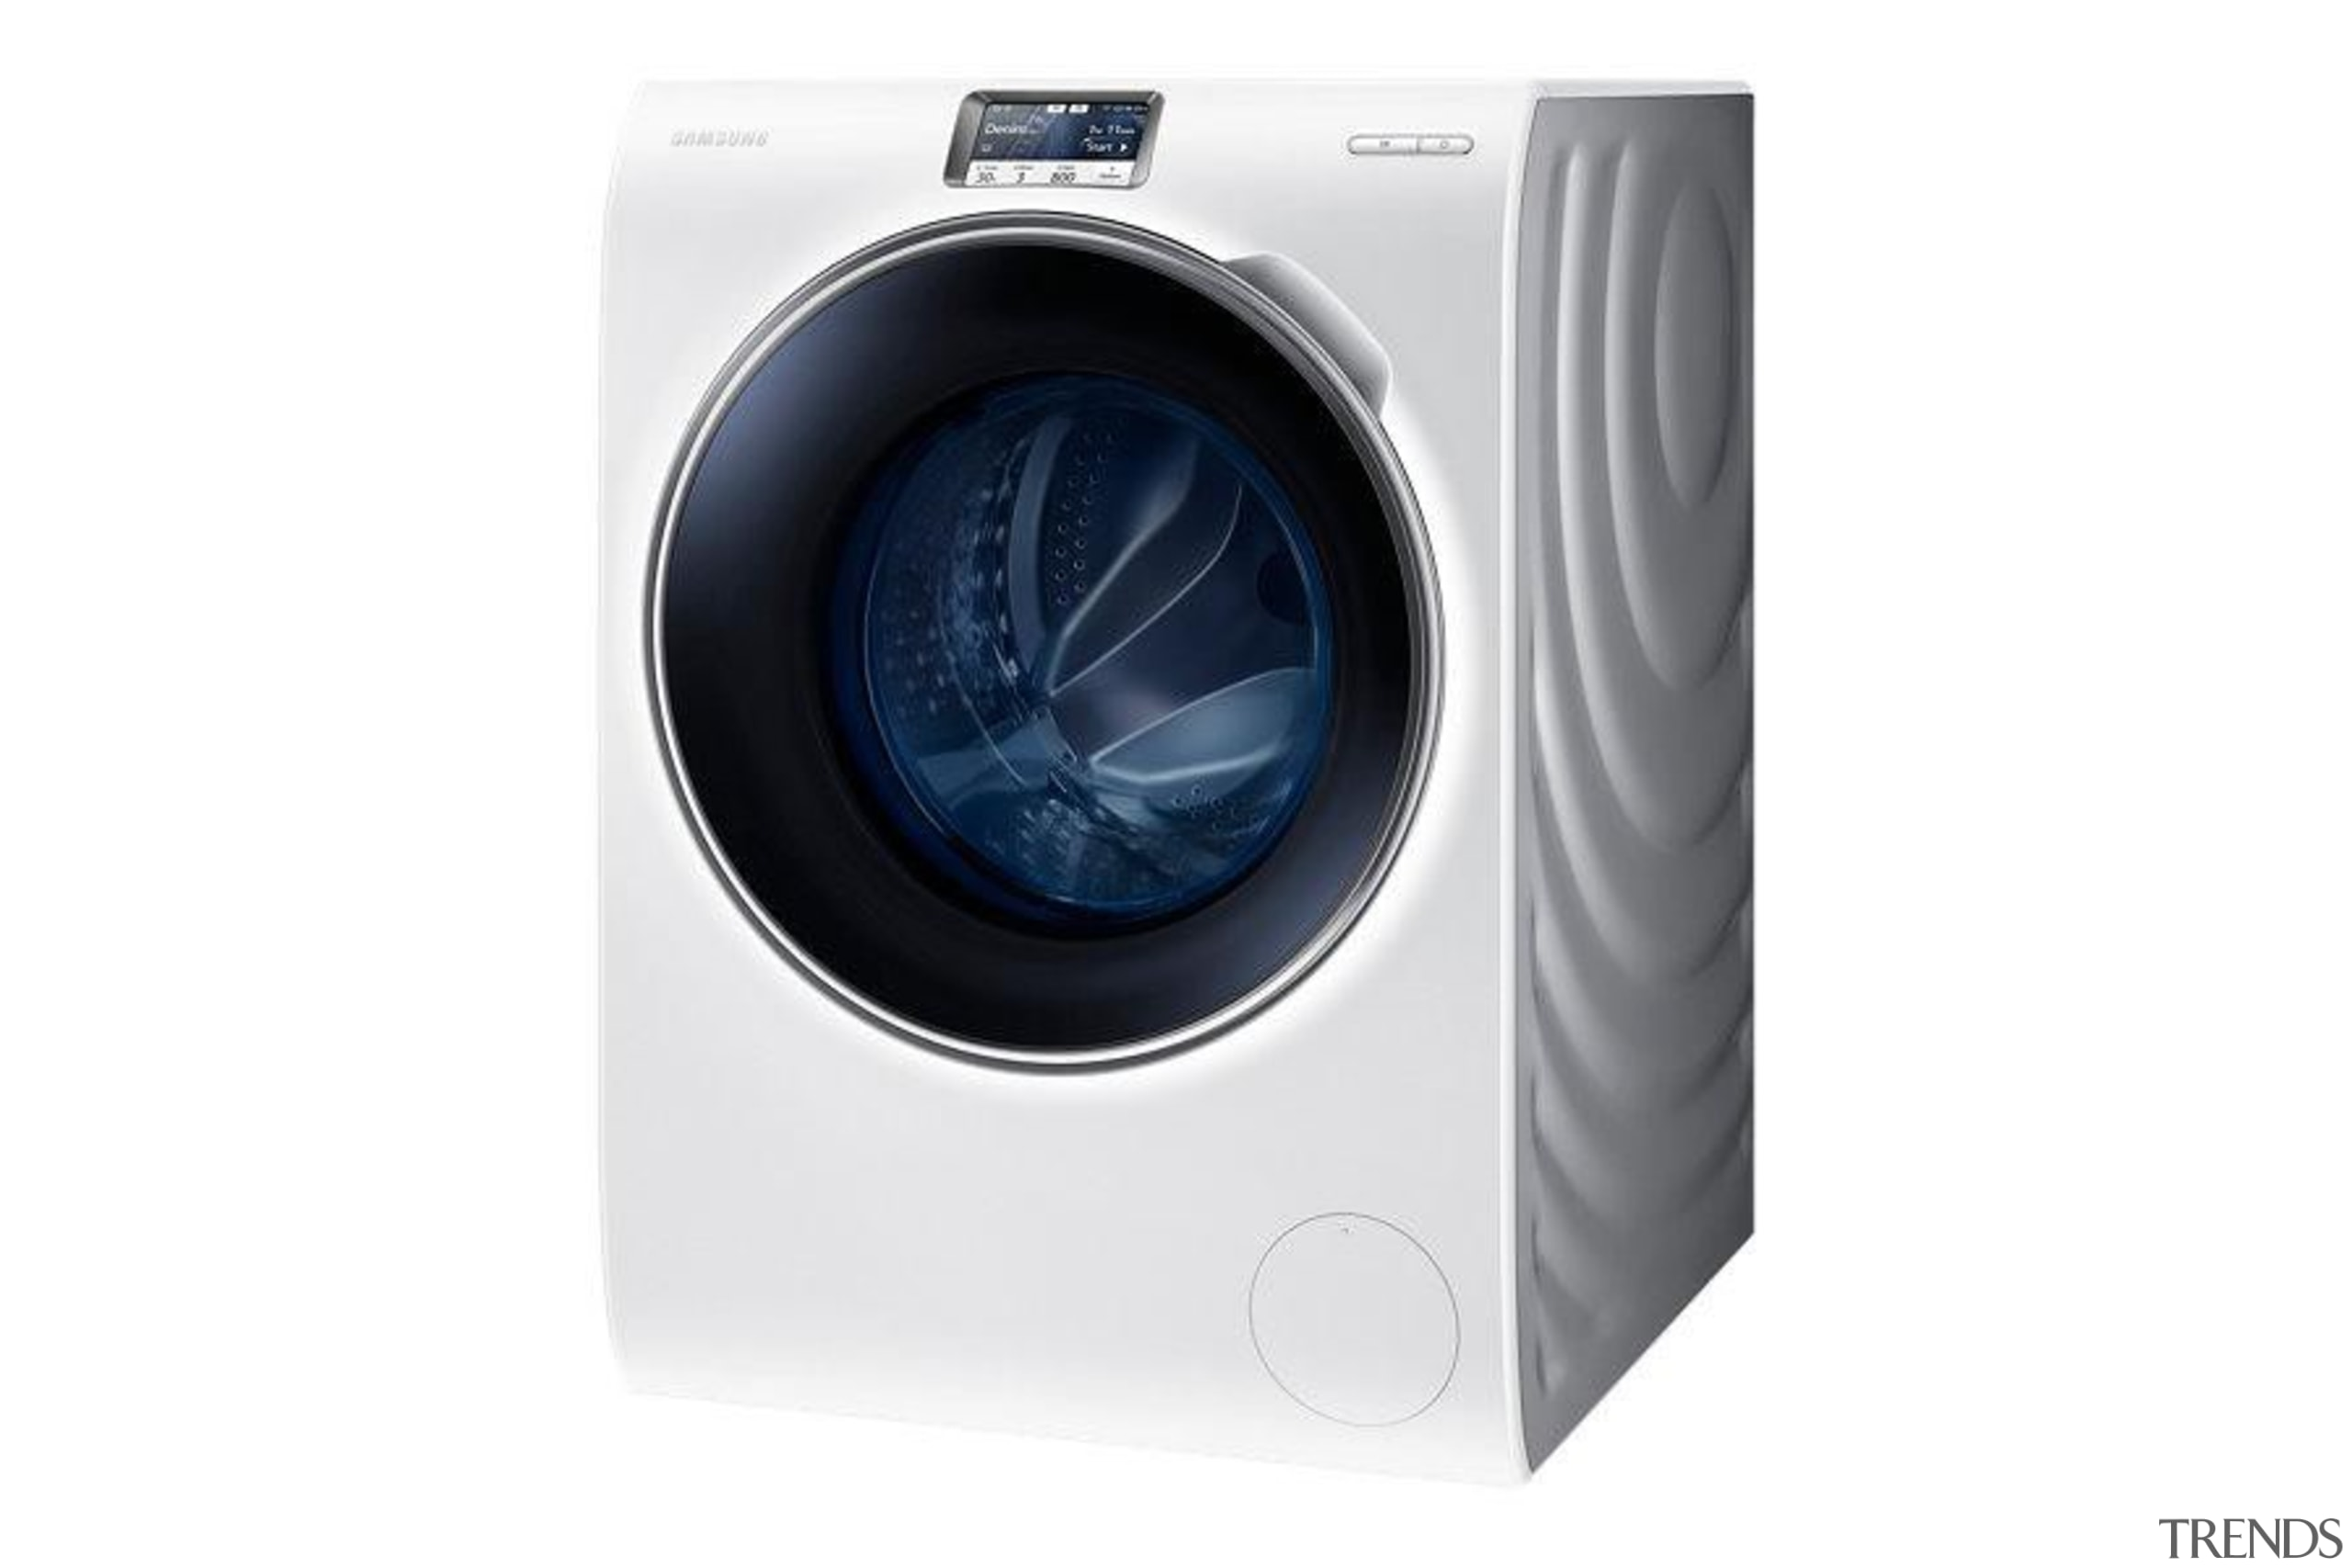 Laundry-Front loader WW90H9600EW/SAWW9000 is a washing machine with clothes dryer, home appliance, laundry, major appliance, product, product design, washing machine, white